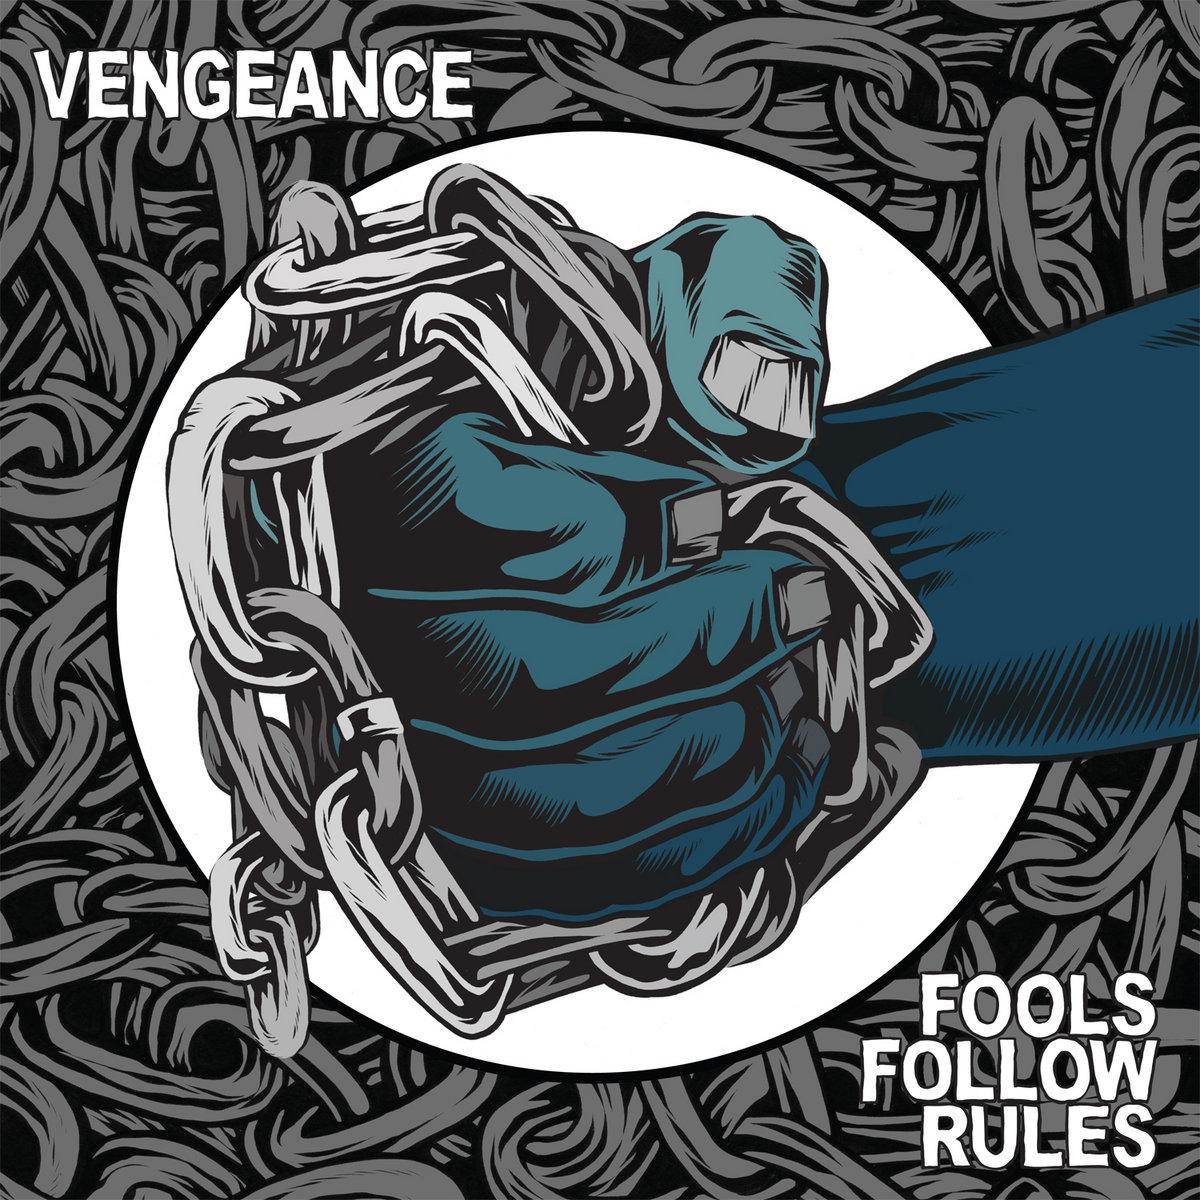 From Sfu096 Vengeance Fools Follow Rules By Six Feet Under Records